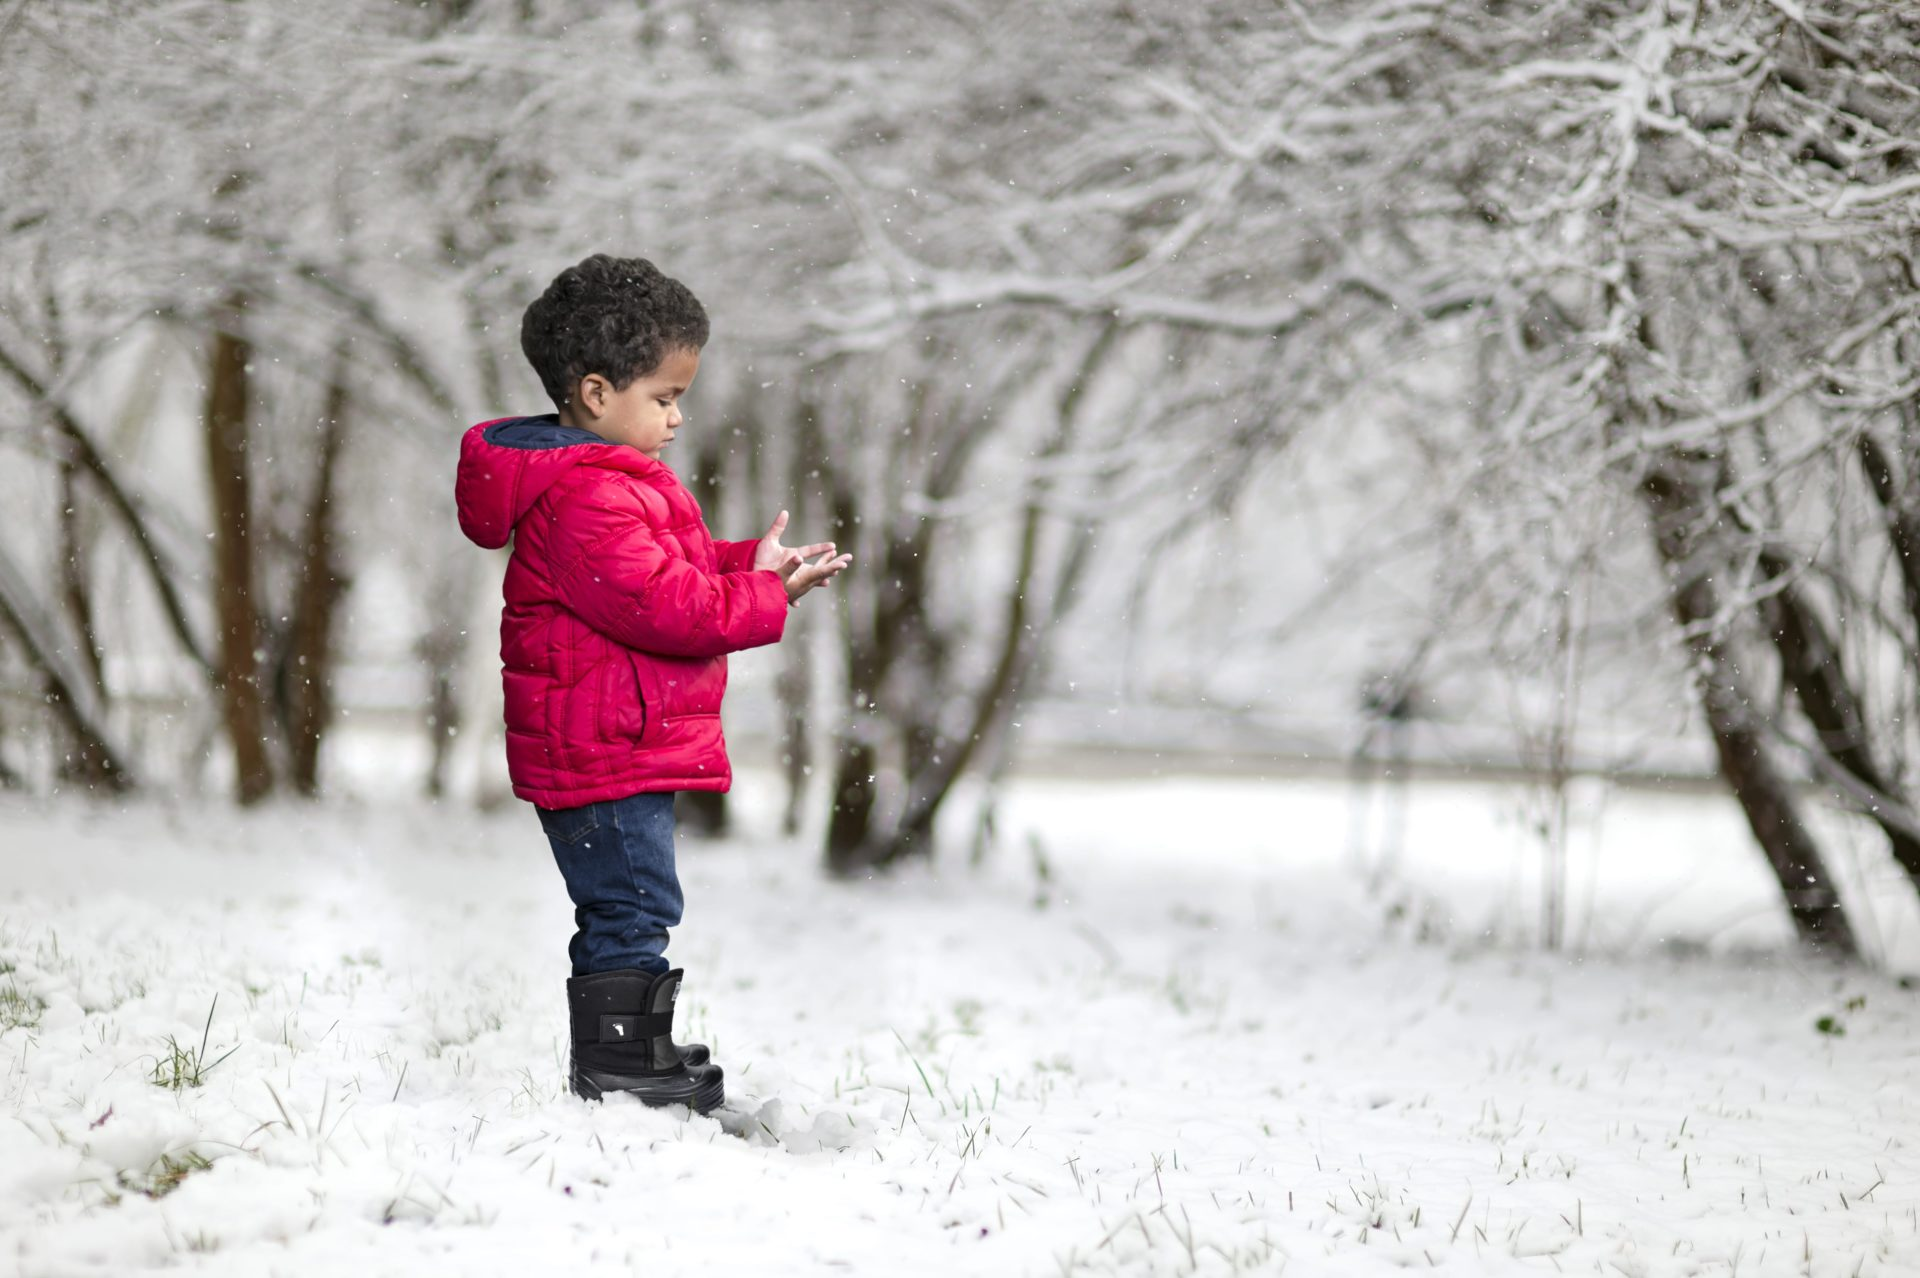 Young kid in snow